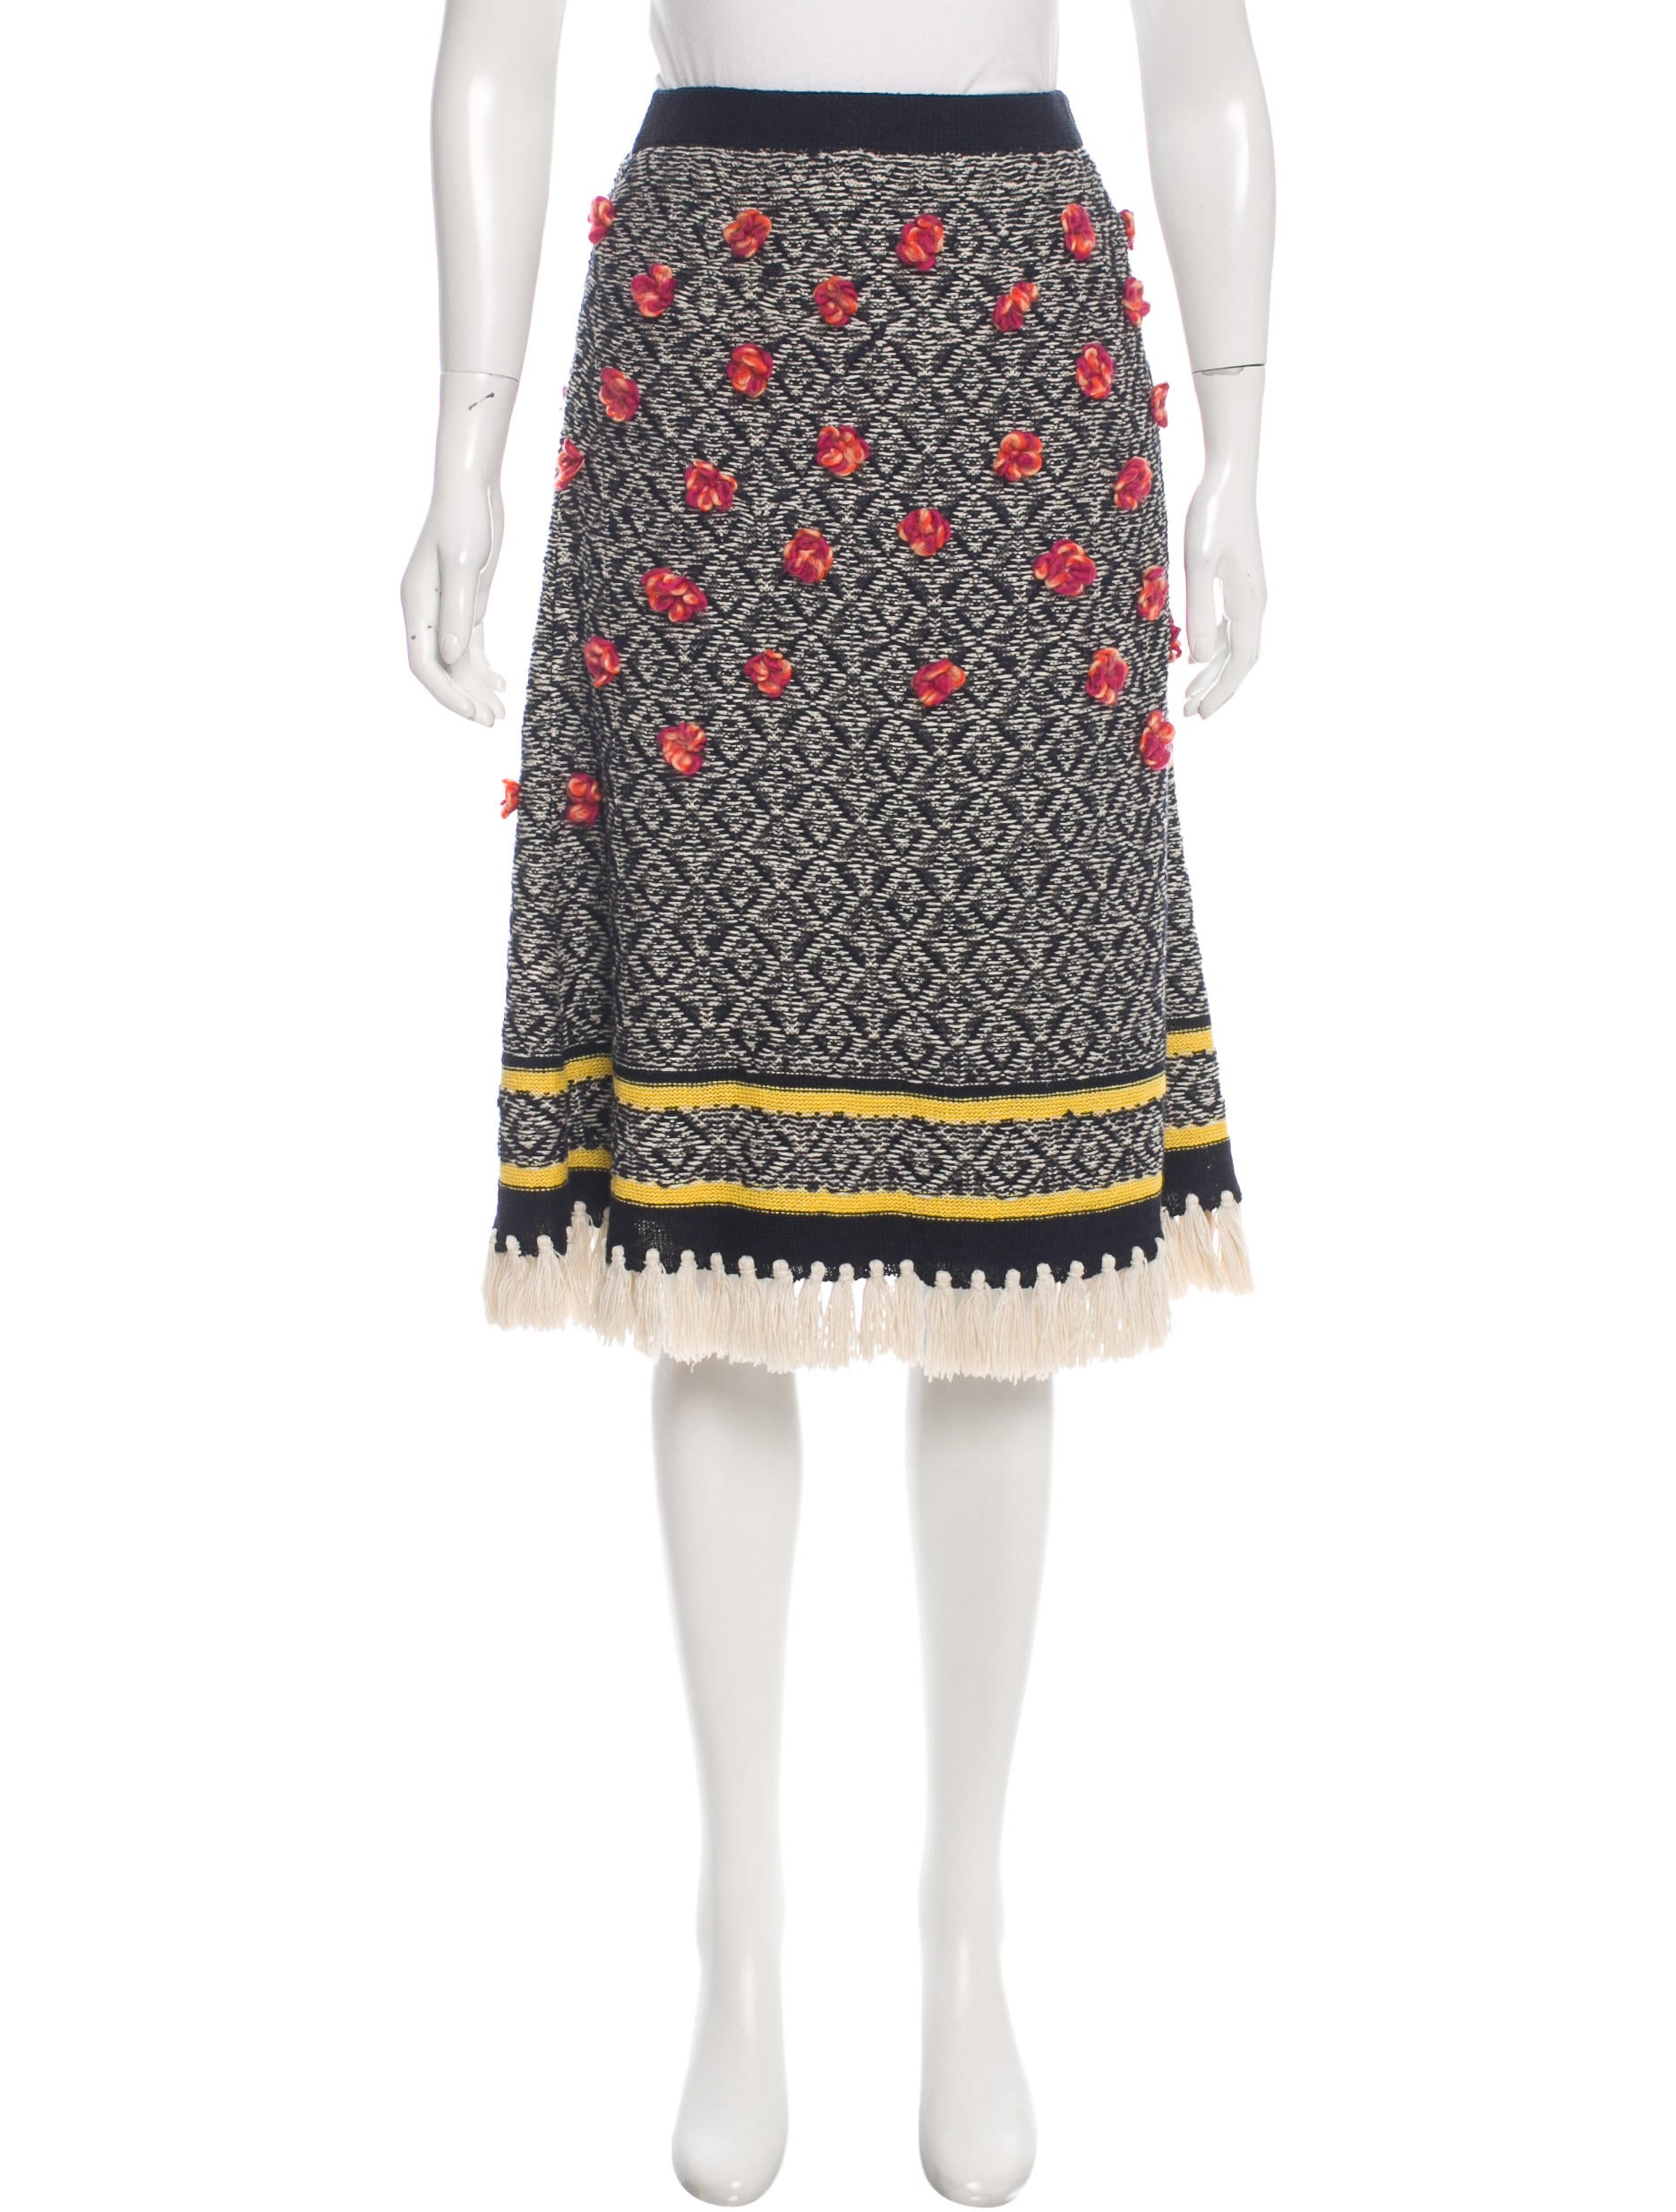 Tory Burch Knit Pencil Skirt - Clothing - WTO89239 The RealReal